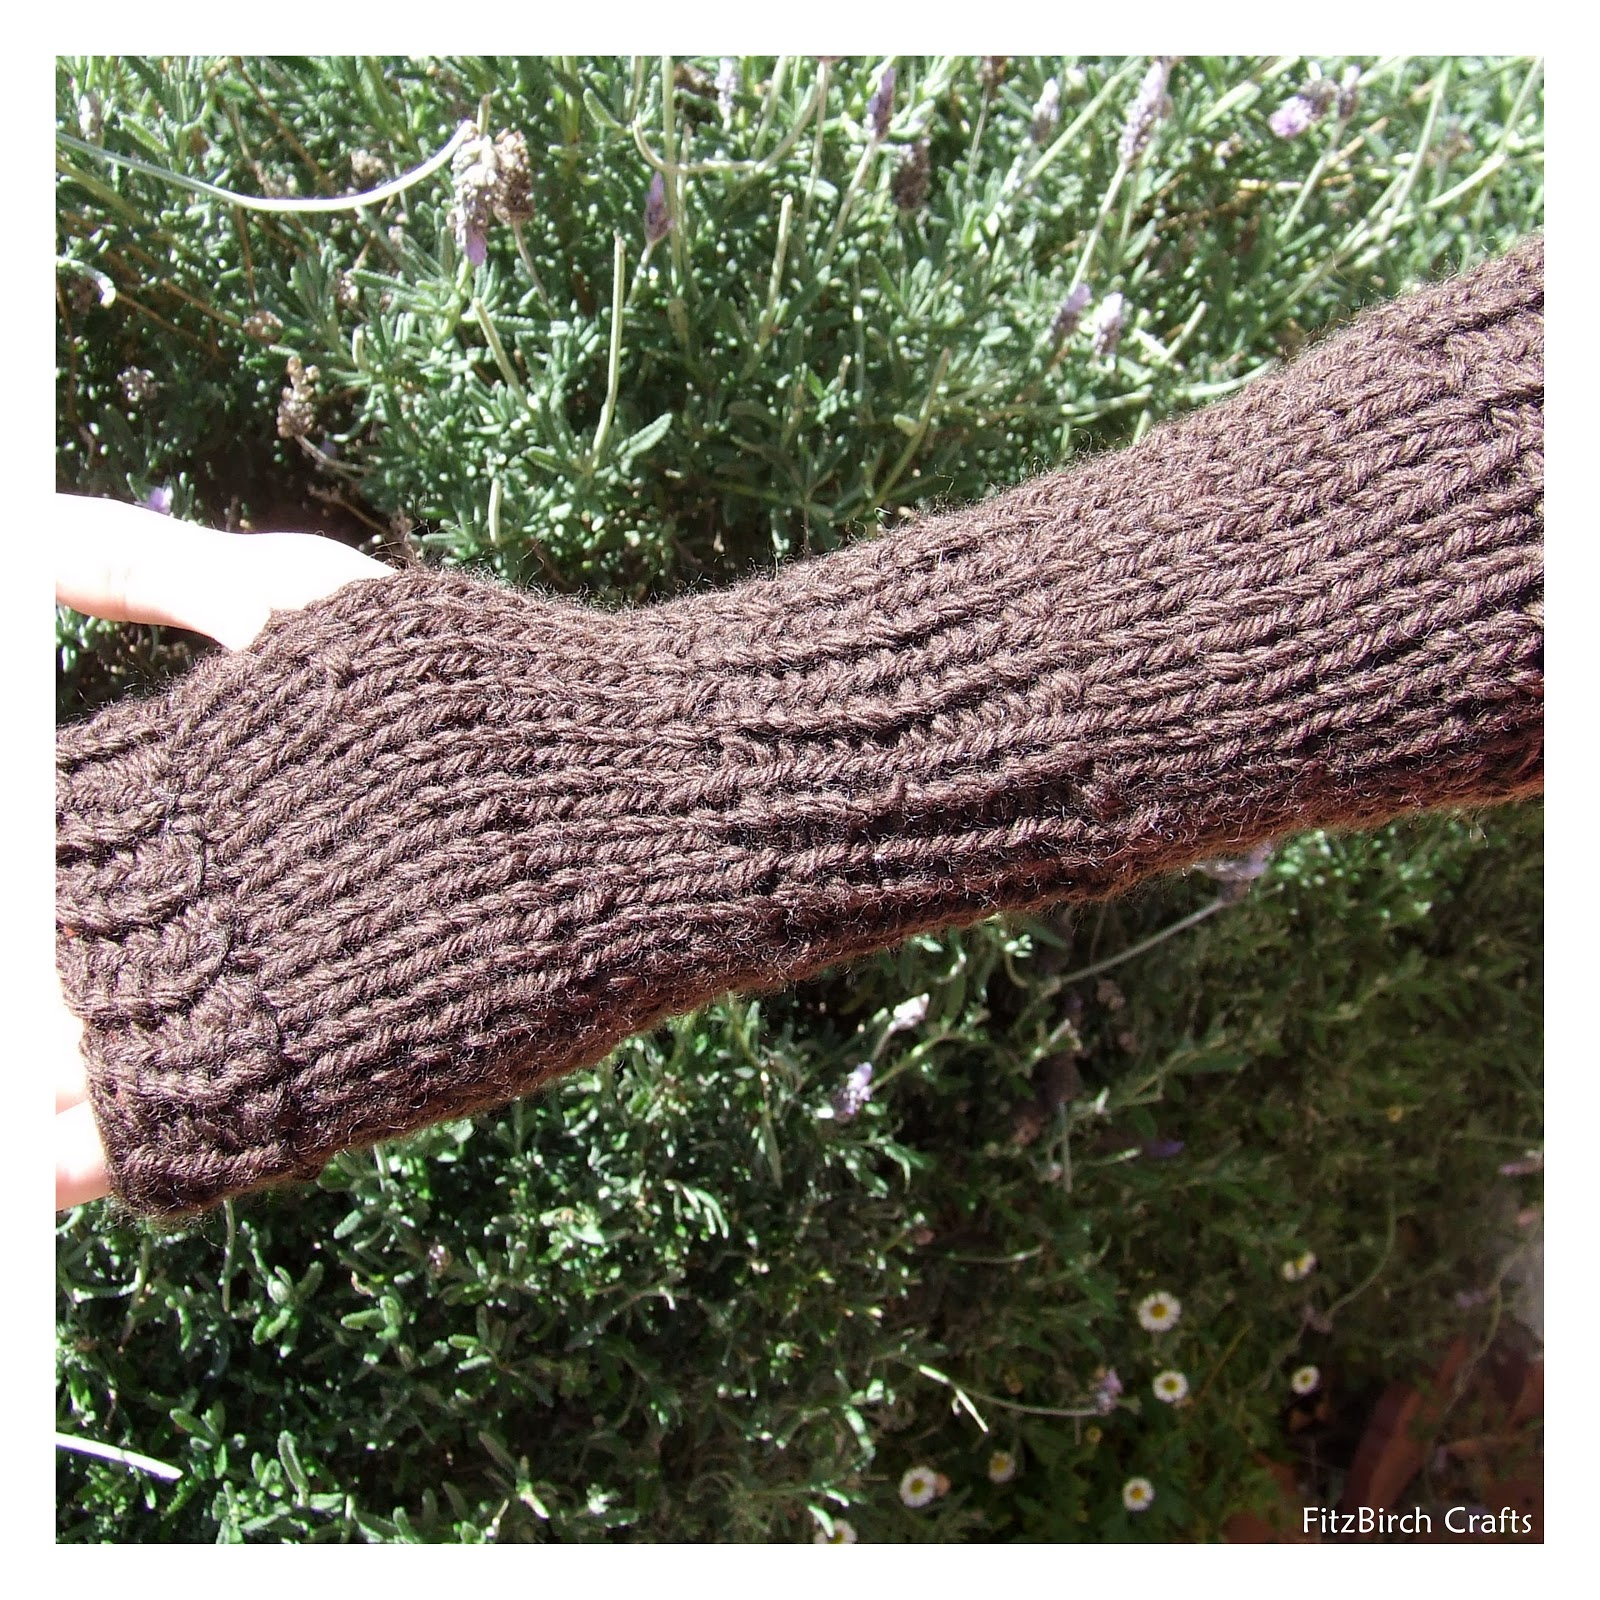 Legend Of Zelda Knitting Pattern : Fitzbirch crafts legend of zelda loom knit link gauntlets